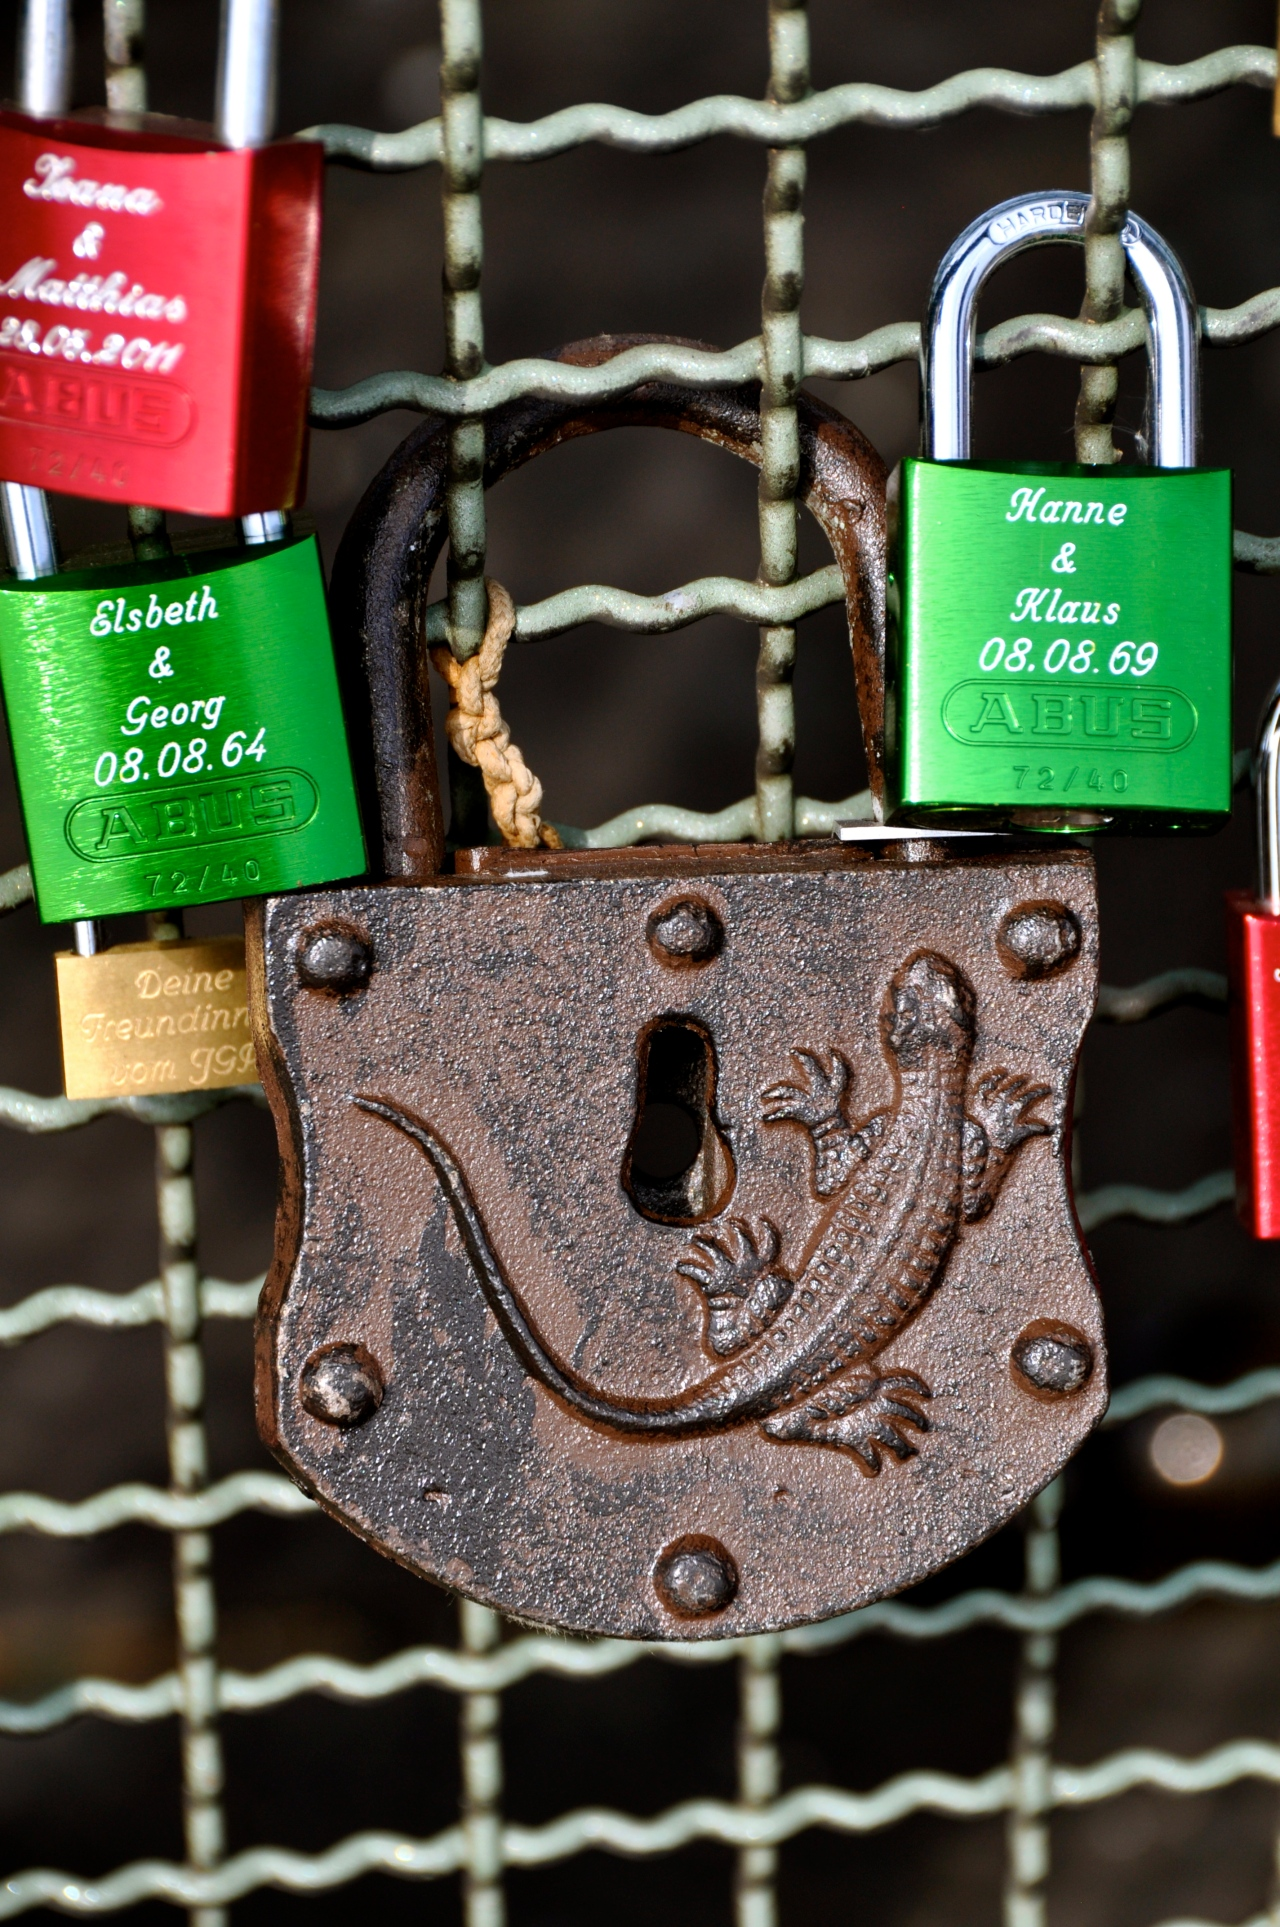 Koeln 073, Hoehenzollernbrücke, love padlocks, 2012, Photo: Hanne Siebers